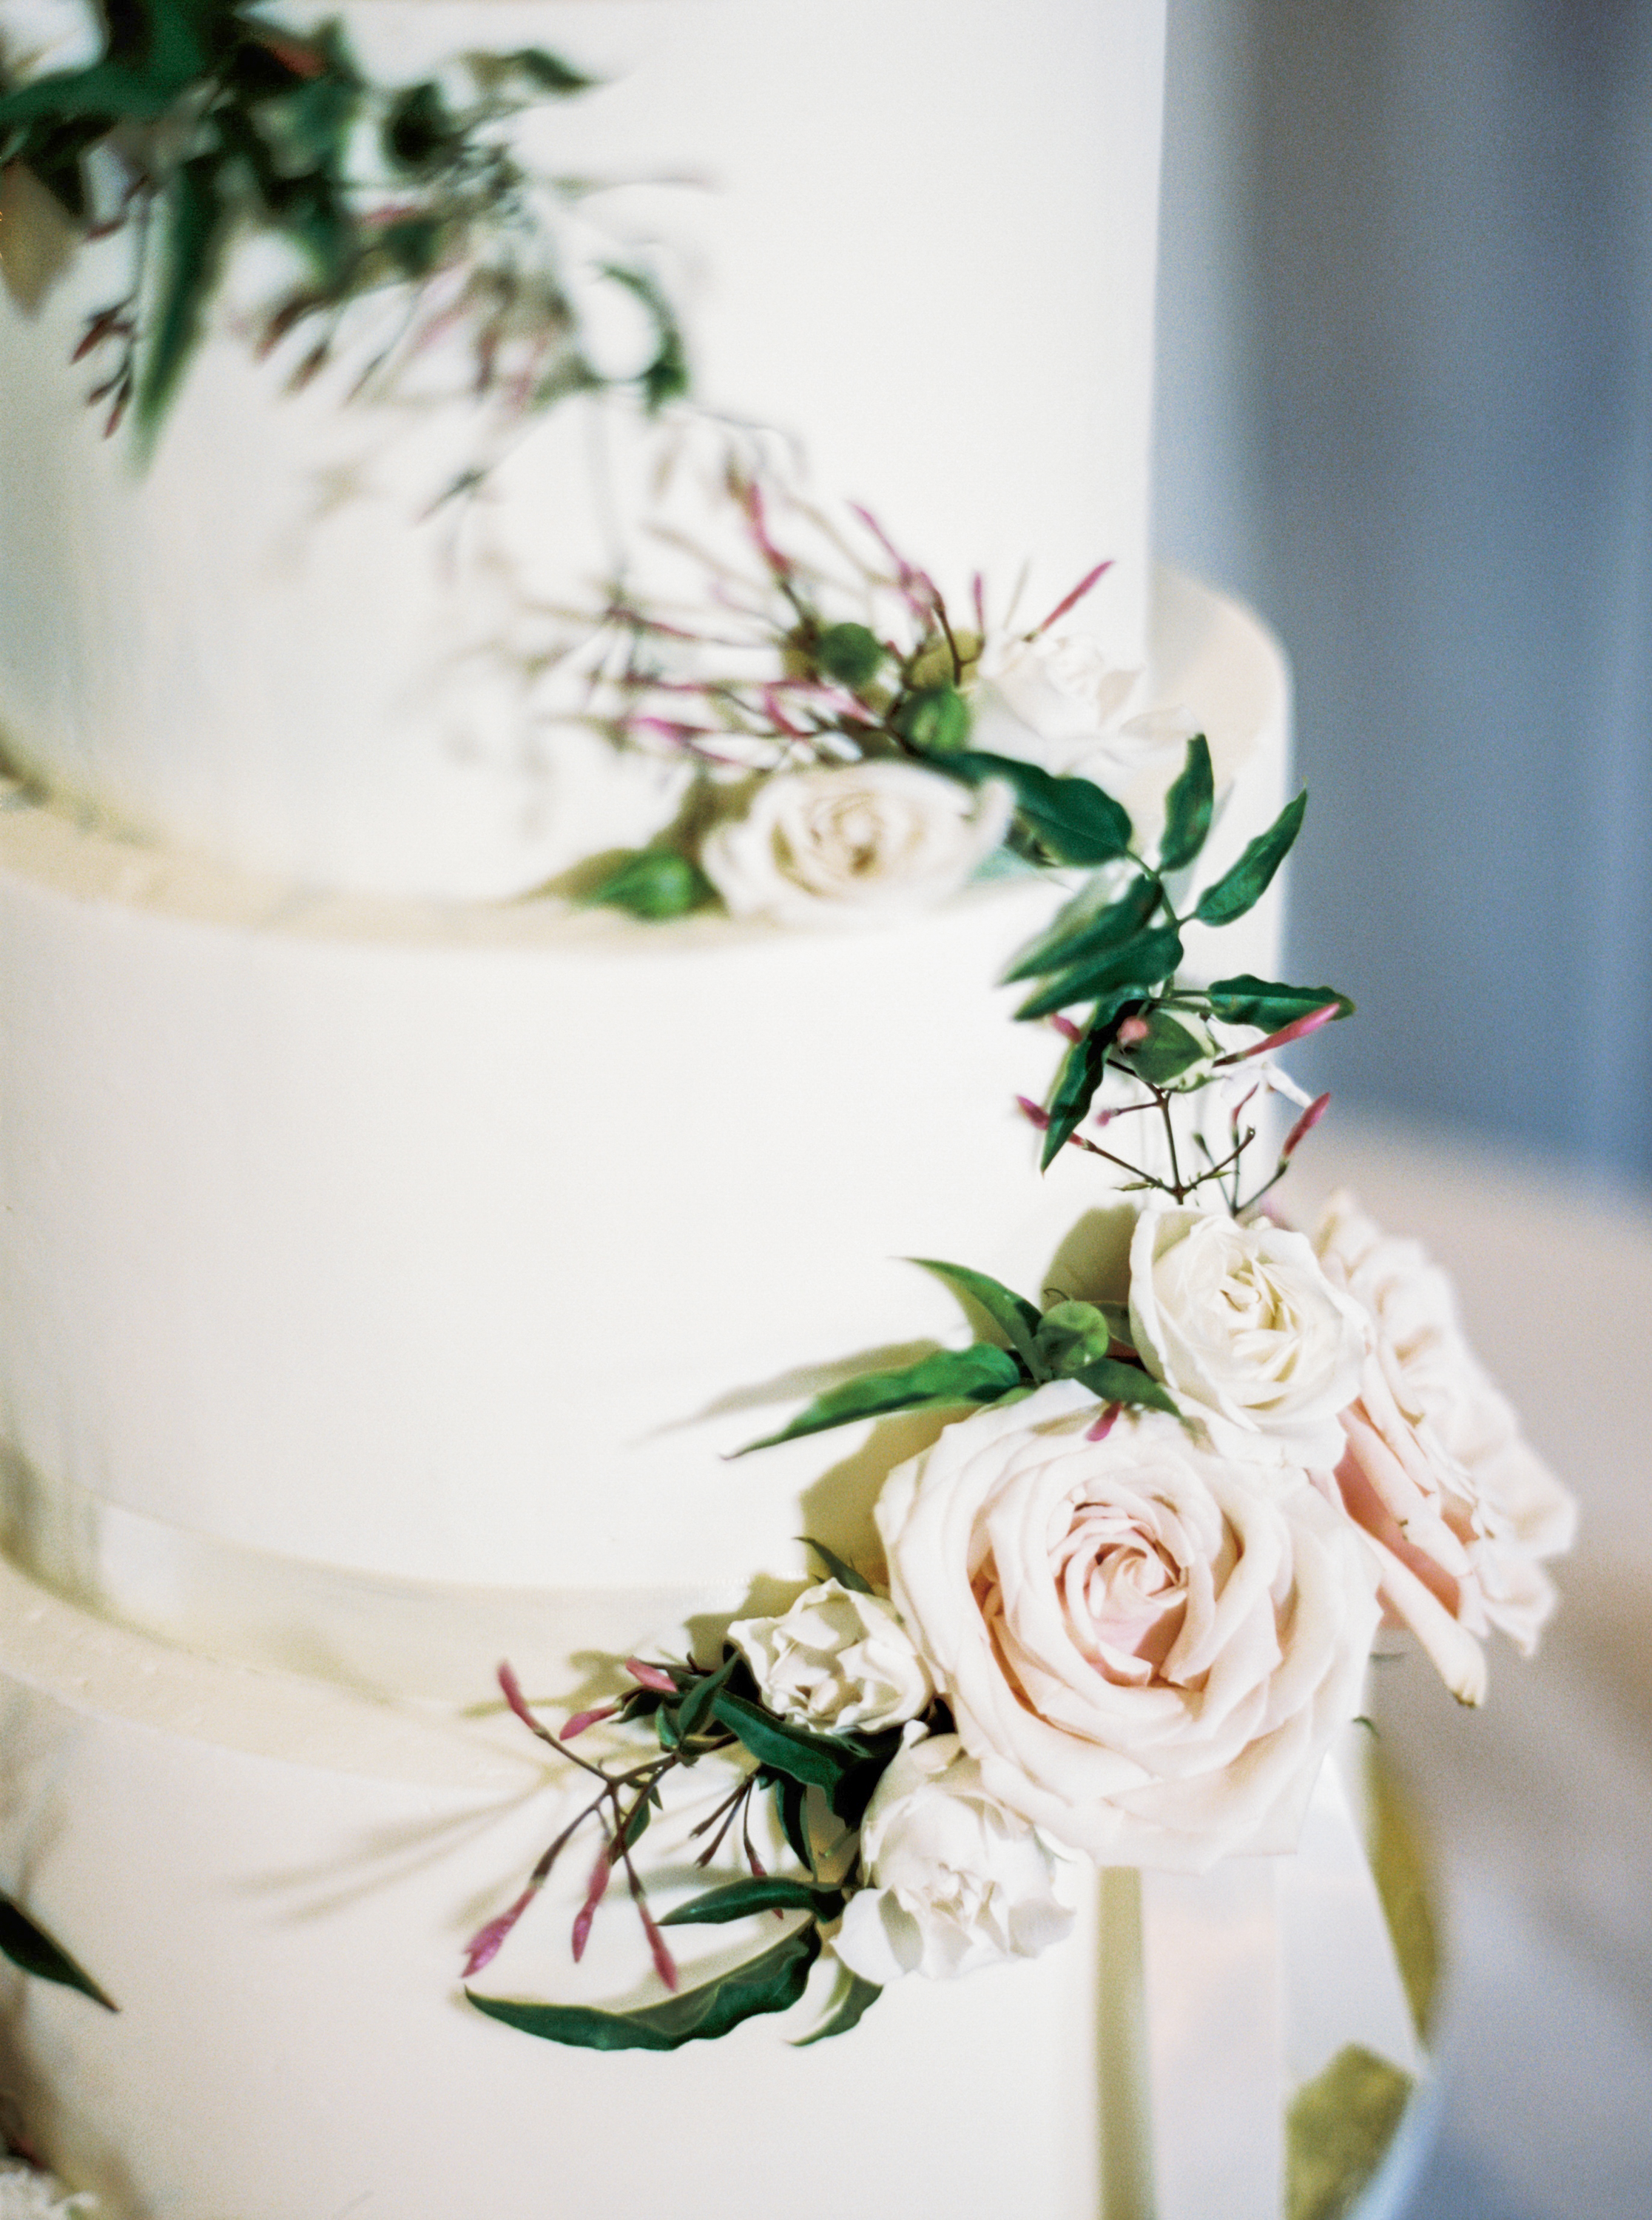 white wedding cake with greenery and blush roses by maxit flower design